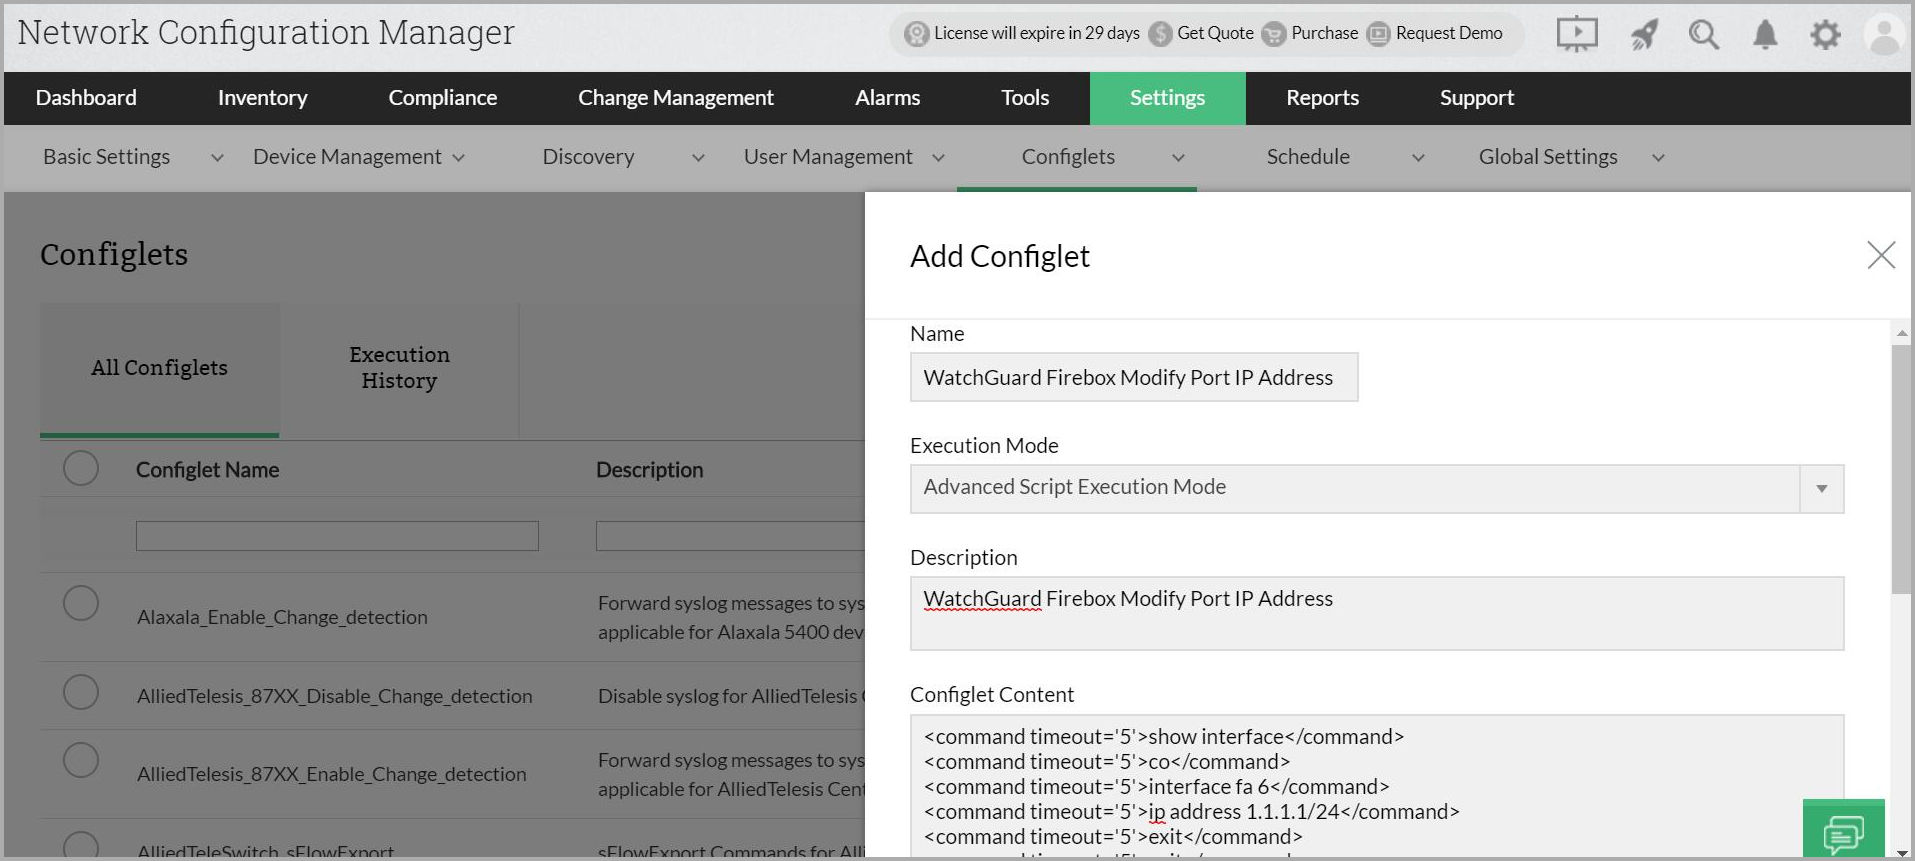 ManageEngine Network Configuration Manager Integration Guide